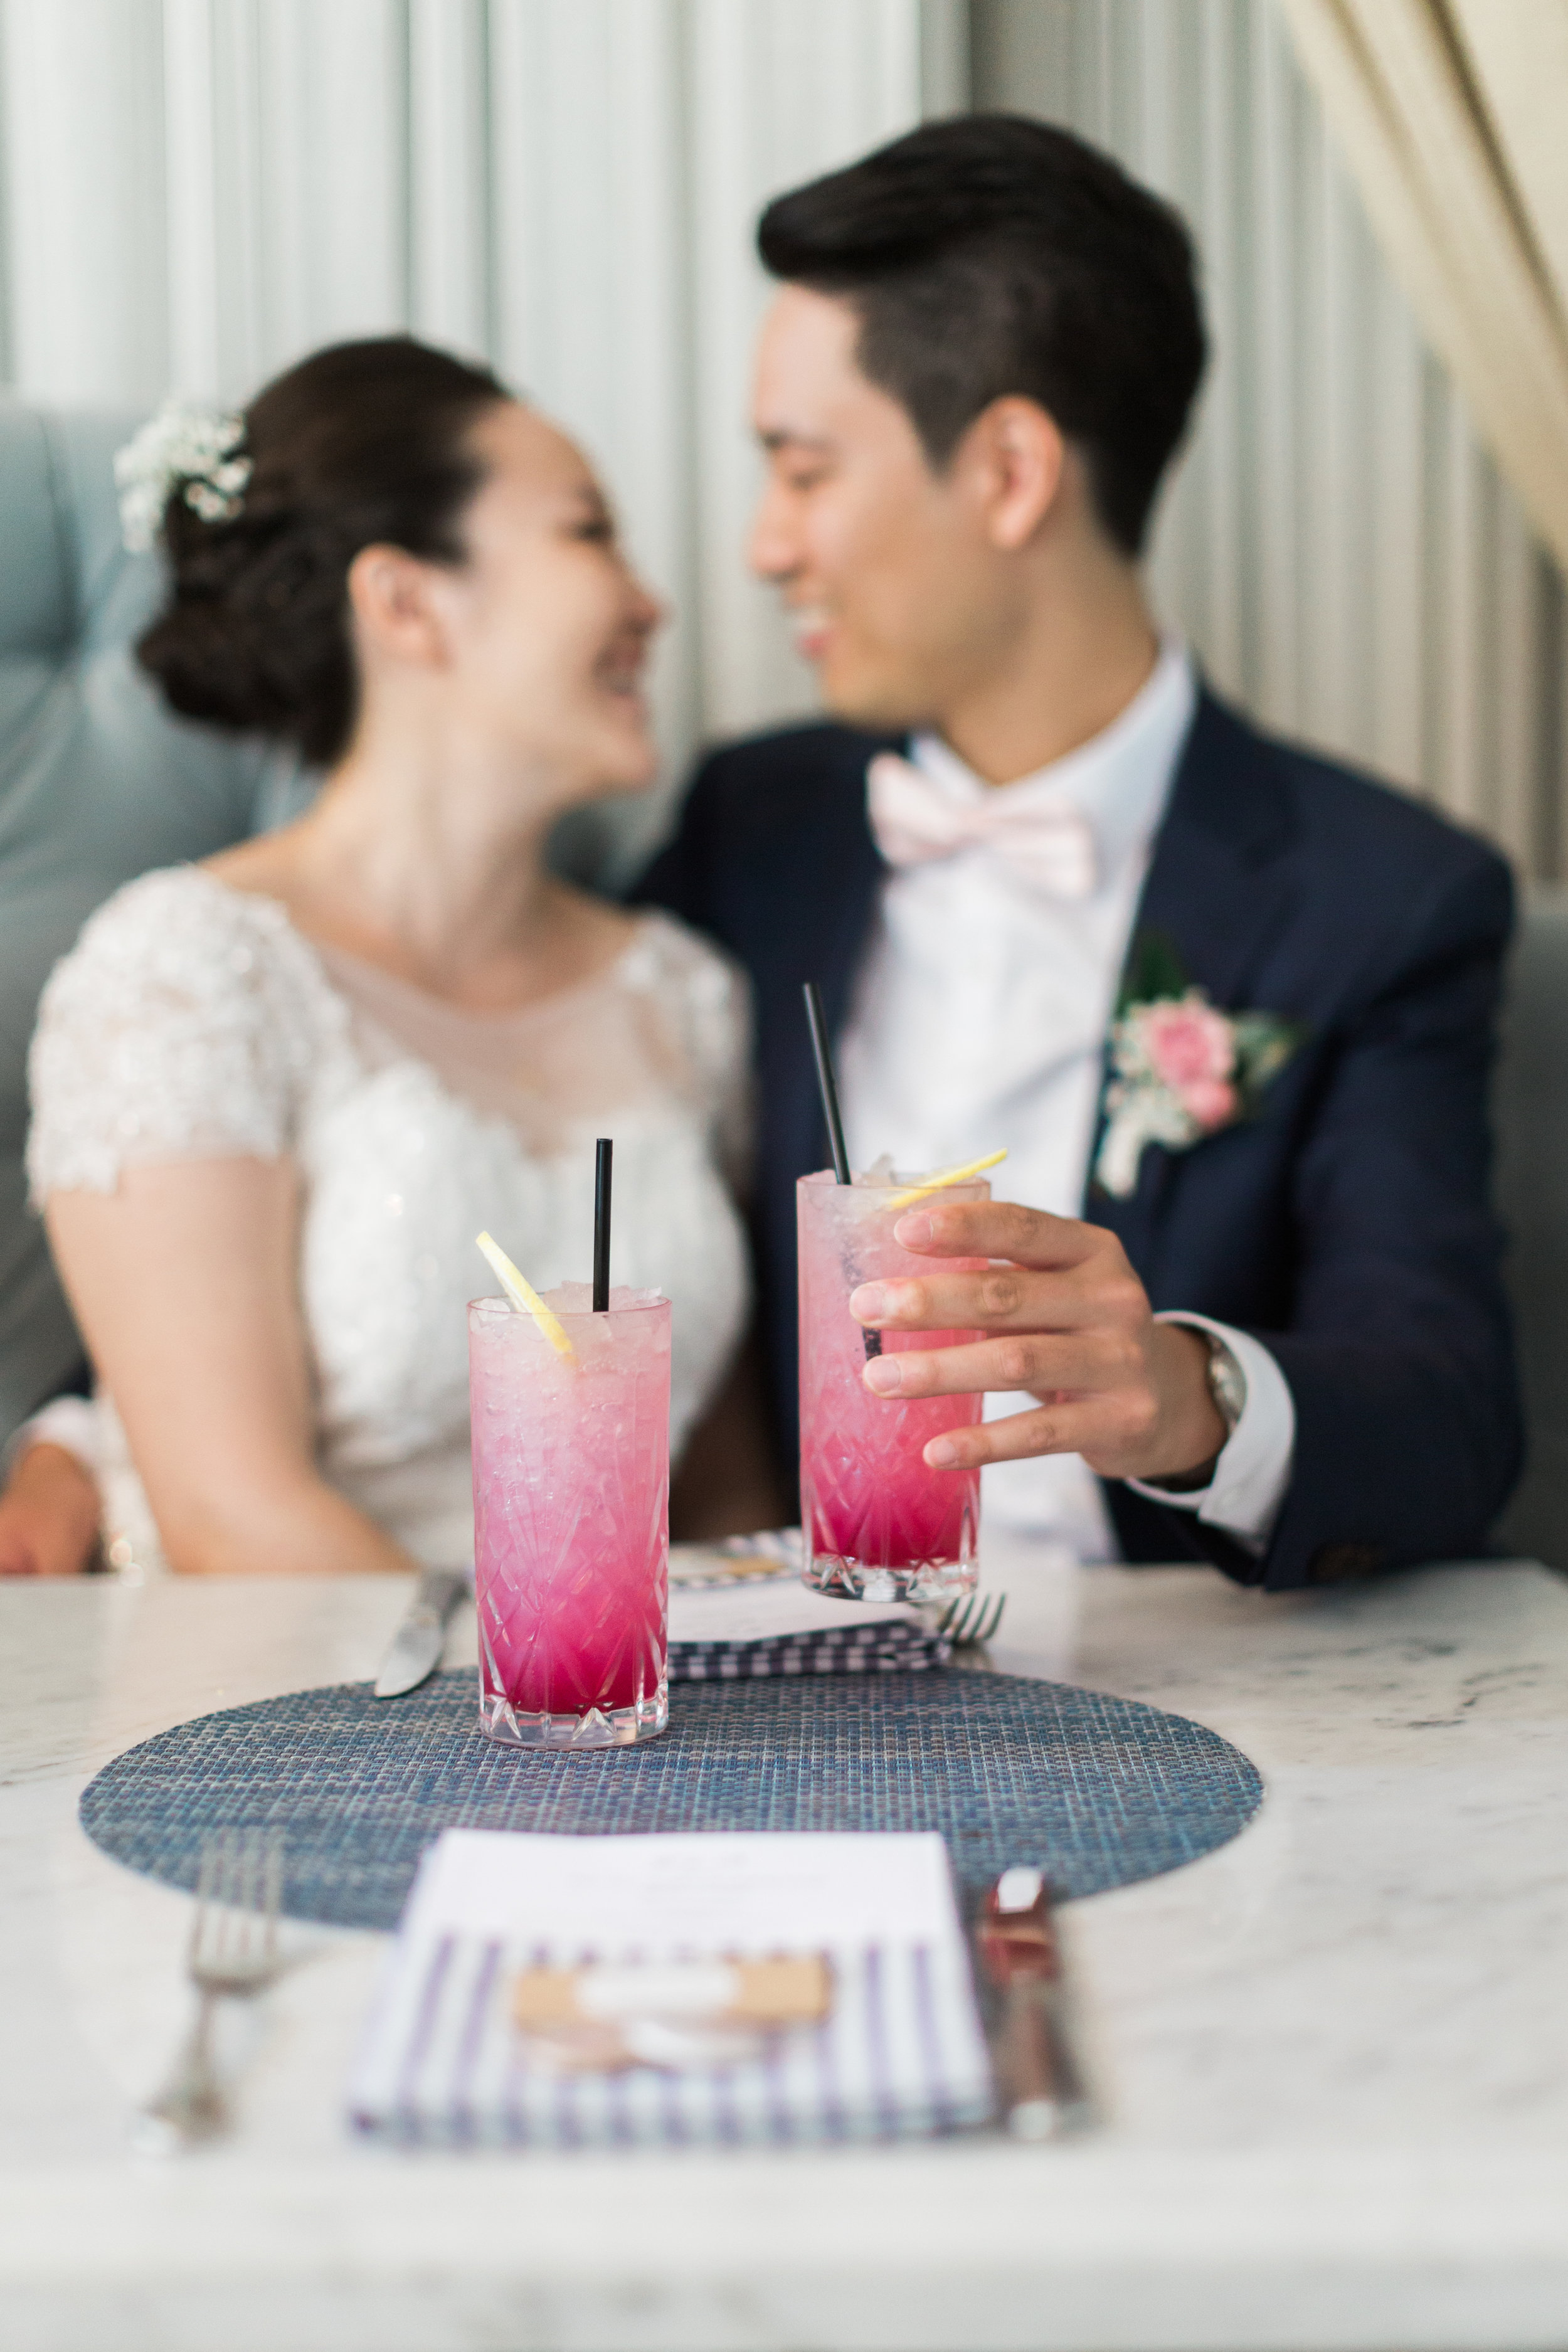 BLUUMBLVD Colette Grand Cafe Toronto Wedding